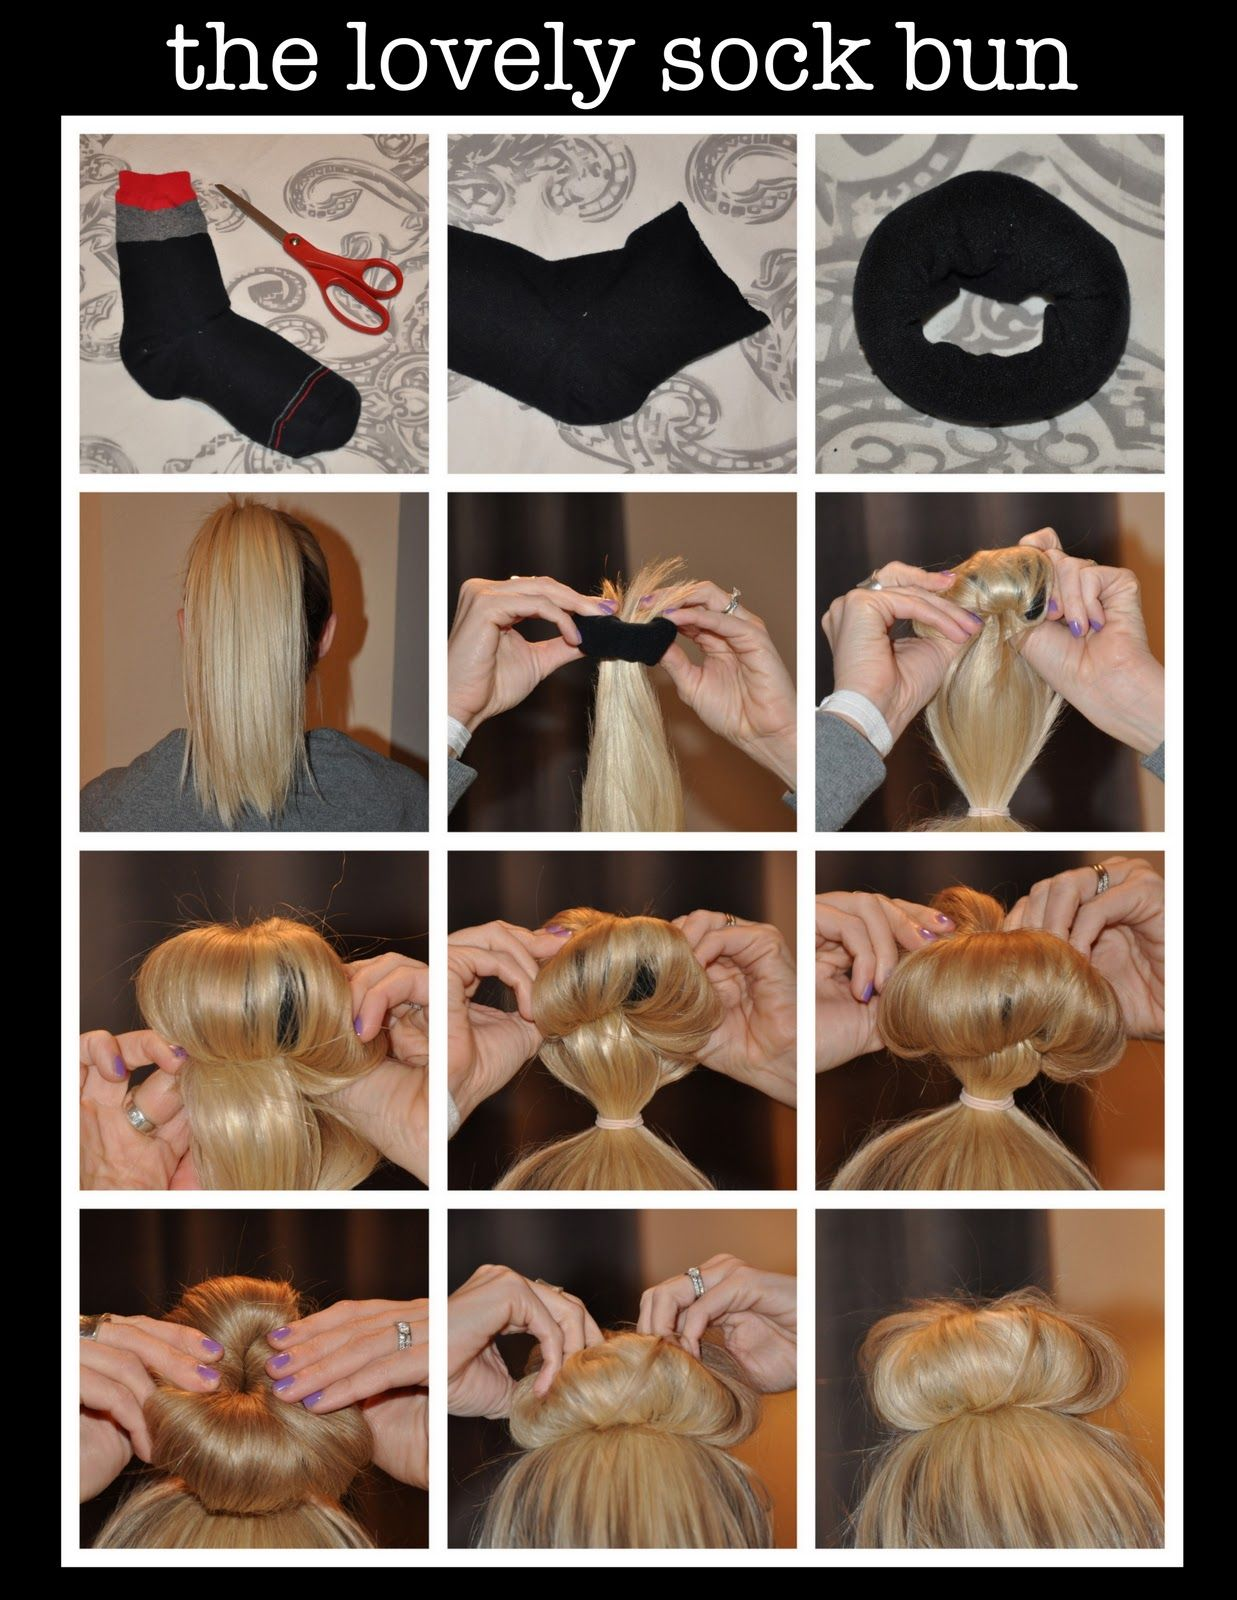 Magnificent 1000 Images About Easy Hairstyles On Pinterest Hair Buns Sock Short Hairstyles Gunalazisus